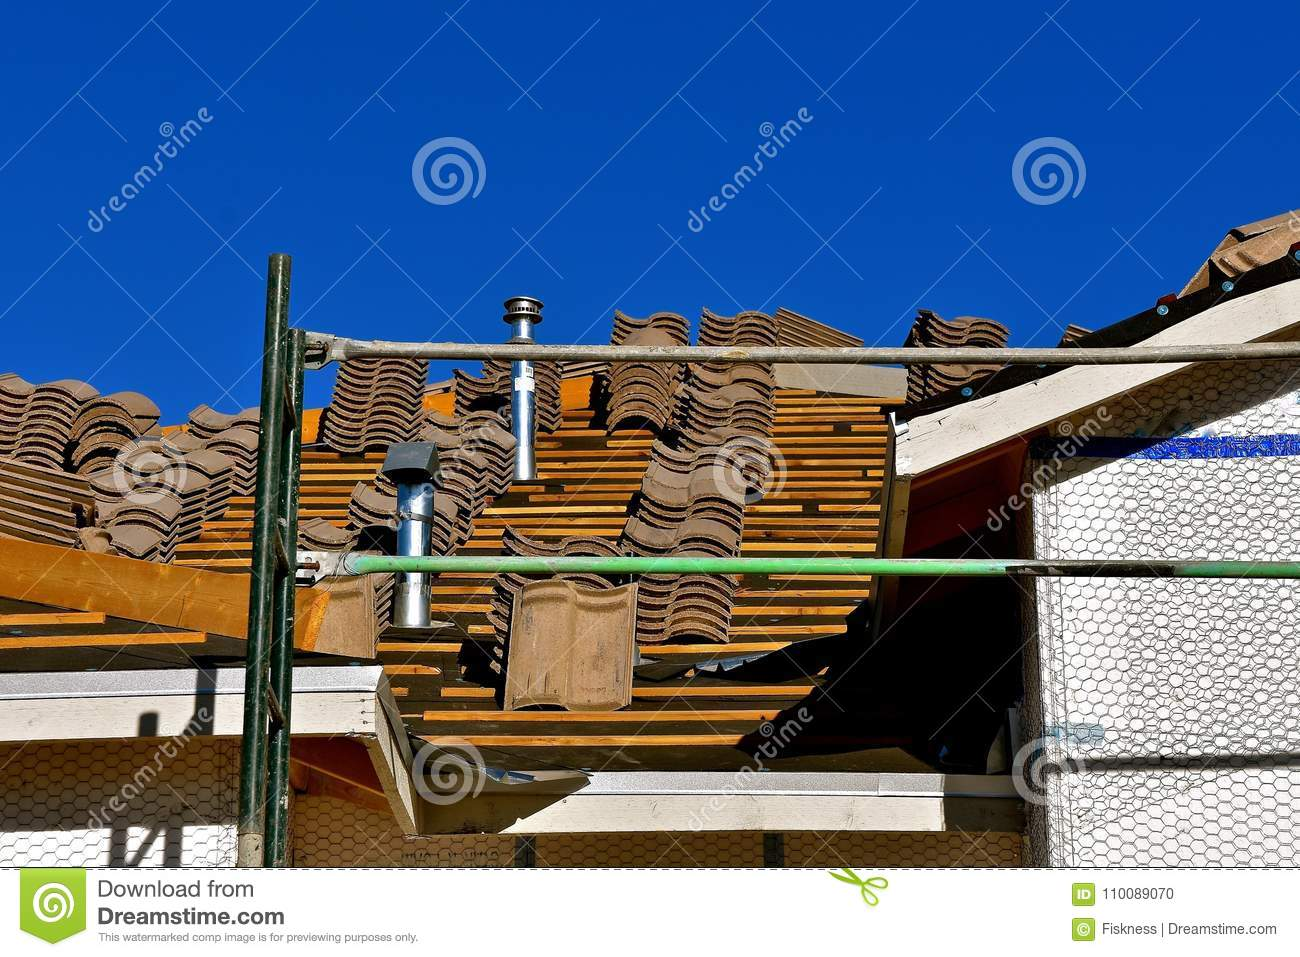 Tile Shingles Stacked On A Roof Under Construction Stock Photo